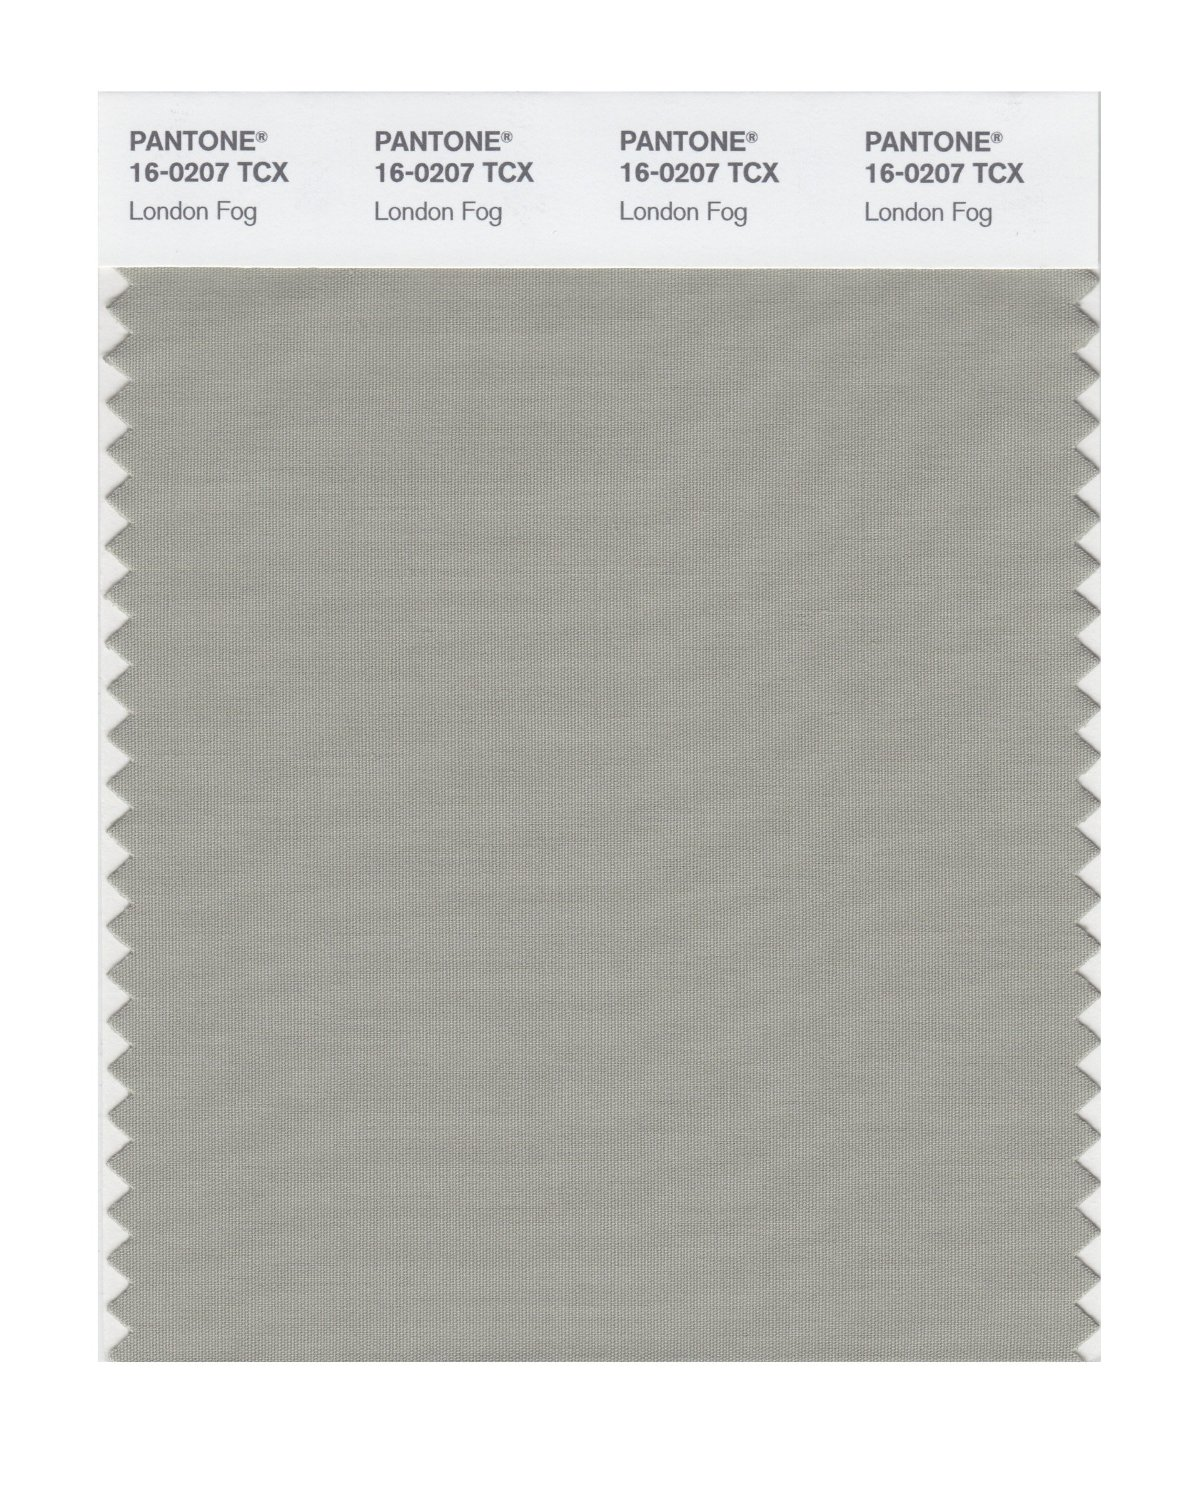 Pantone Smart Swatch 16-0207 London Fog